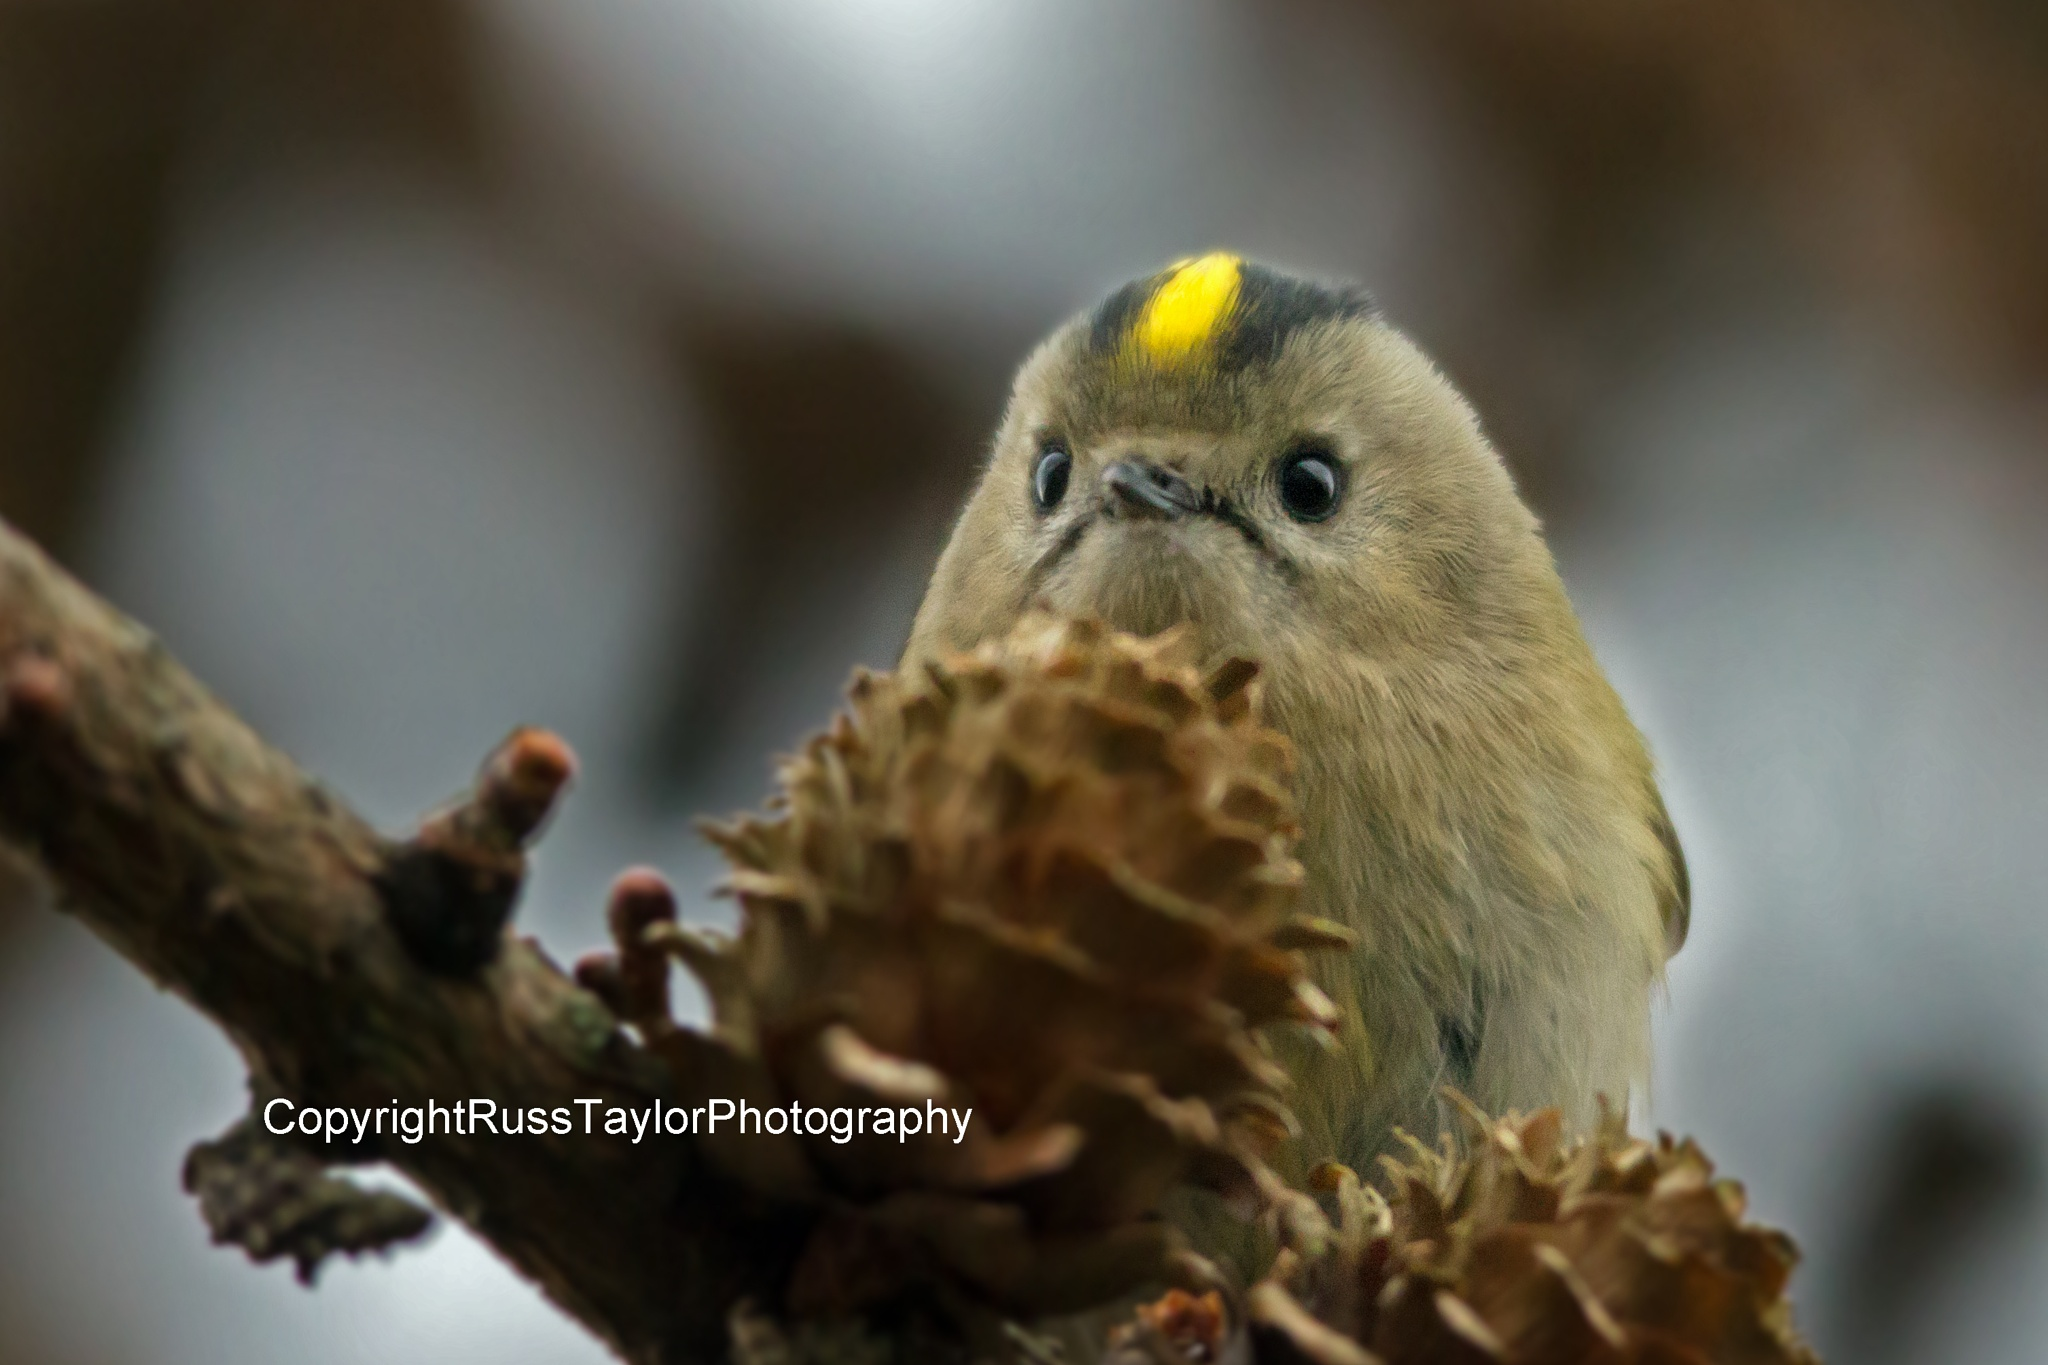 Goldcrest by RussTaylorPhotography